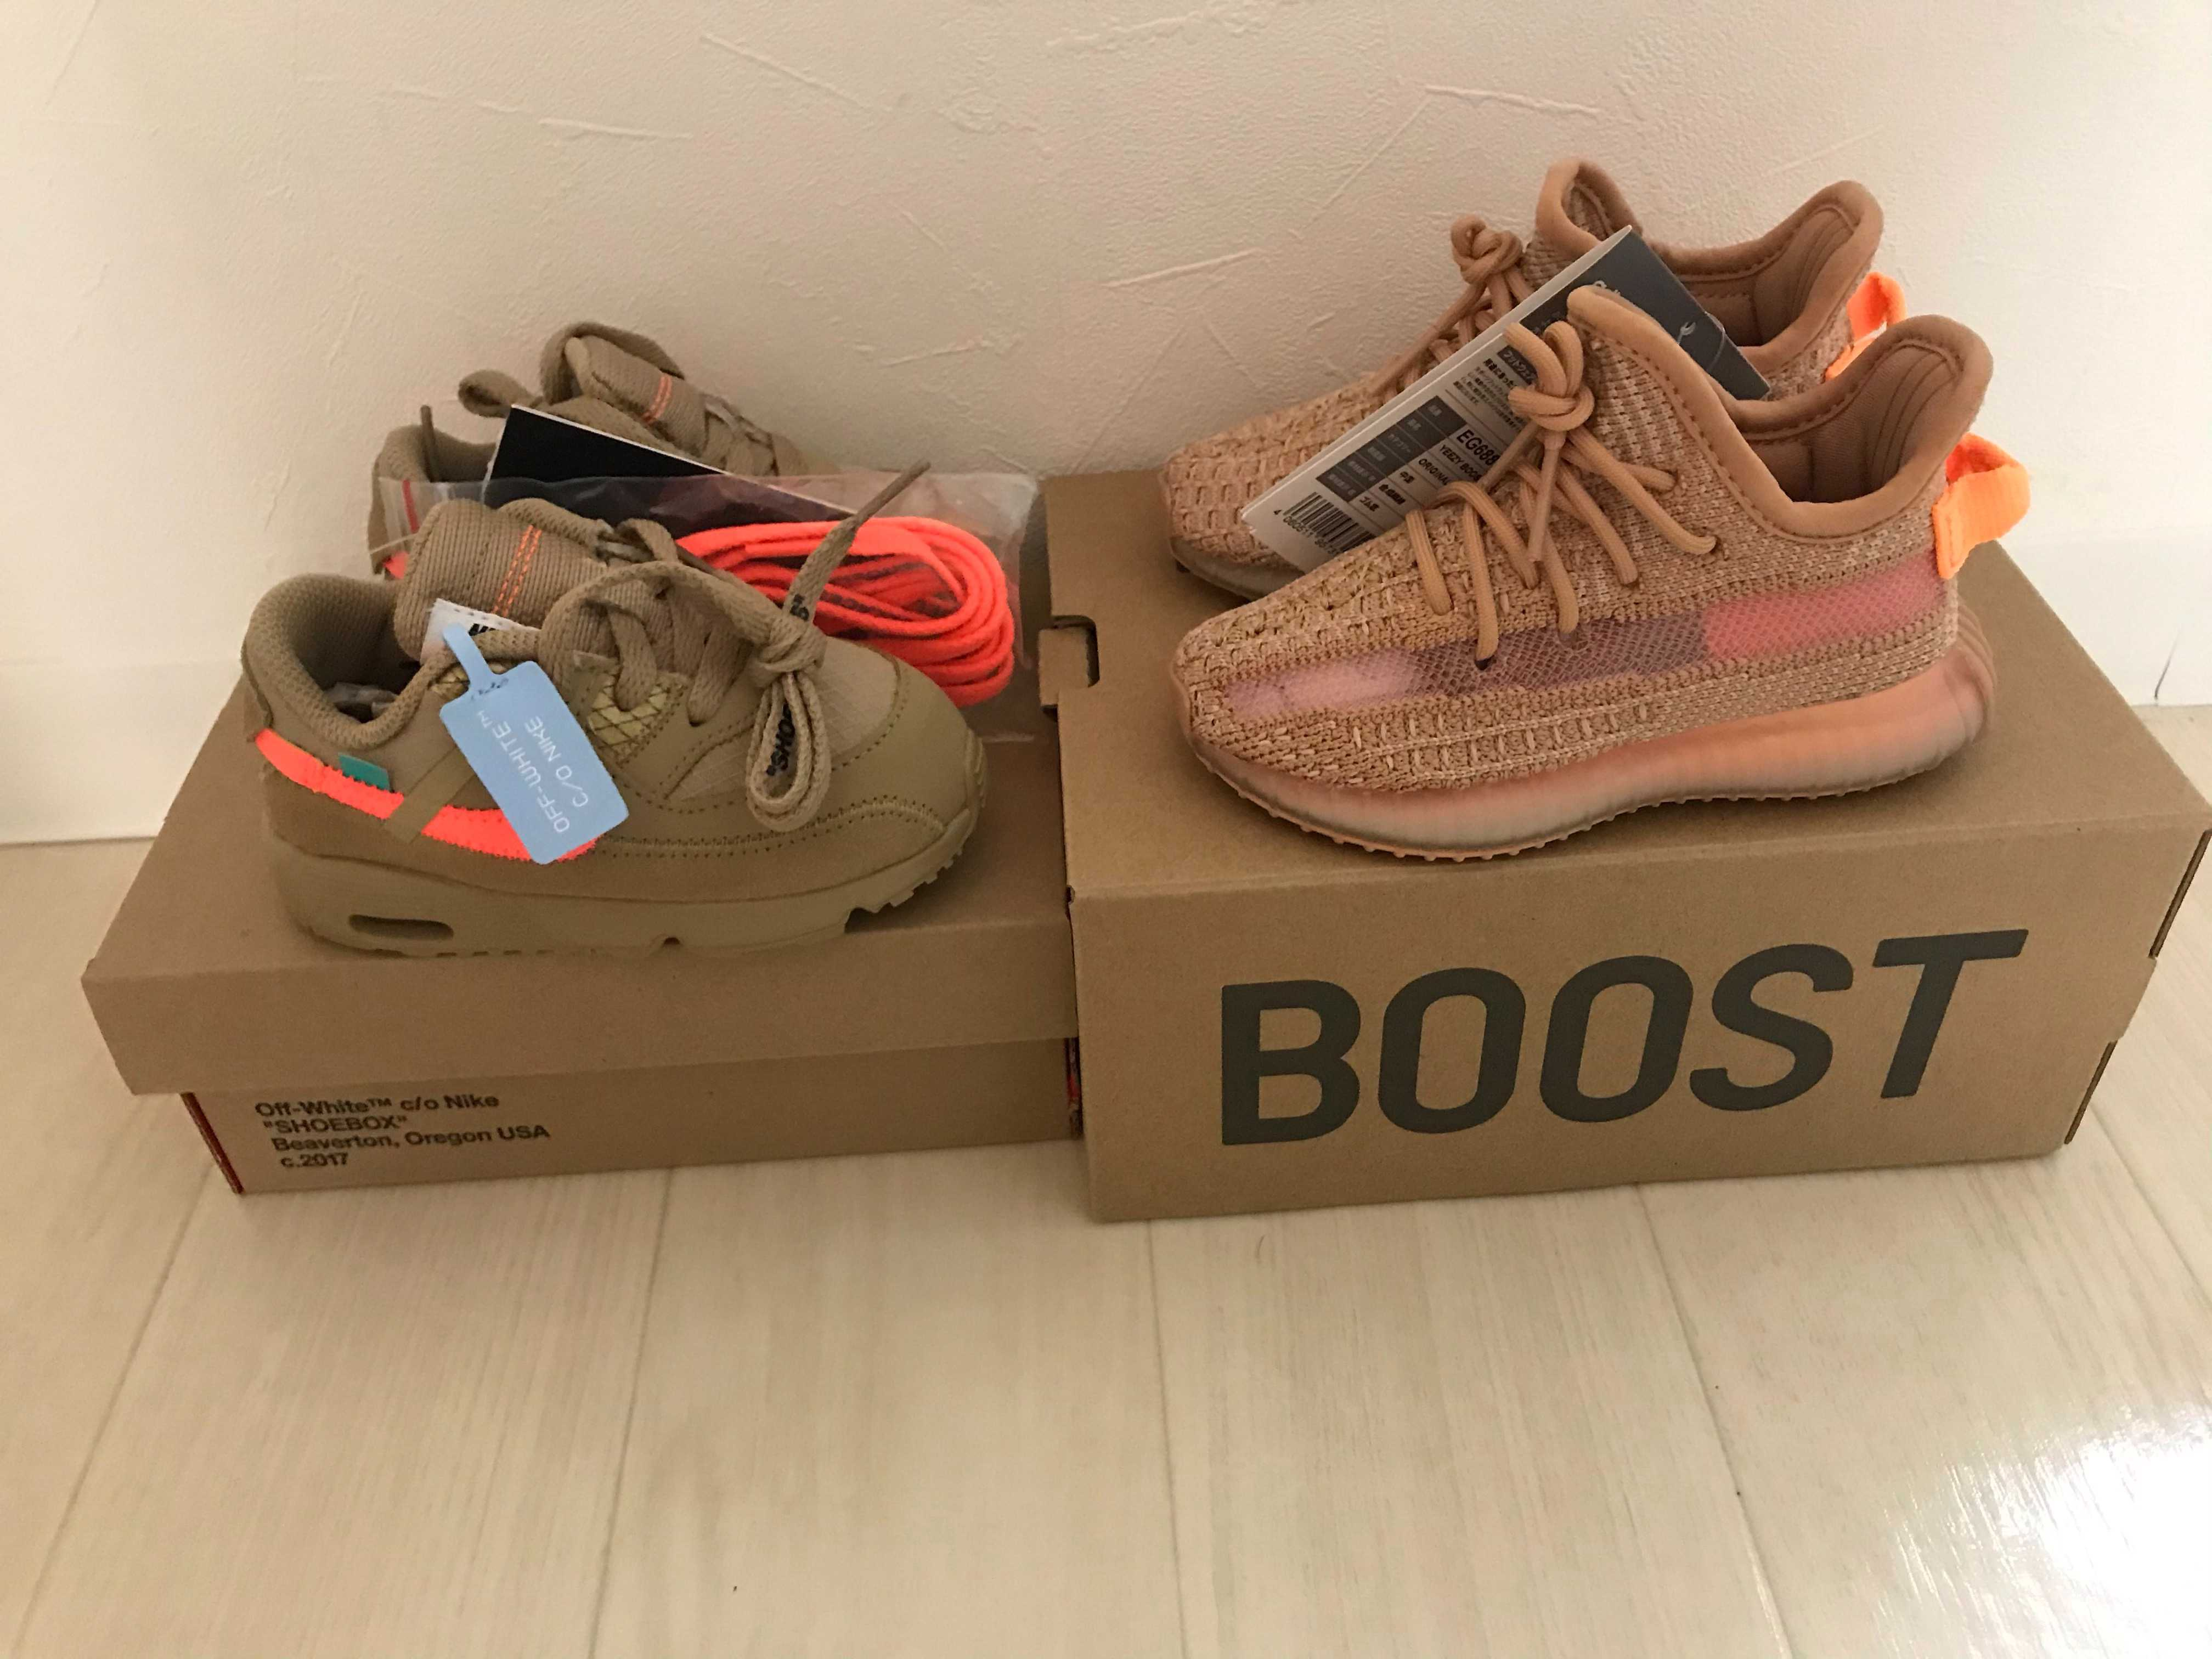 off-white yeezy boost